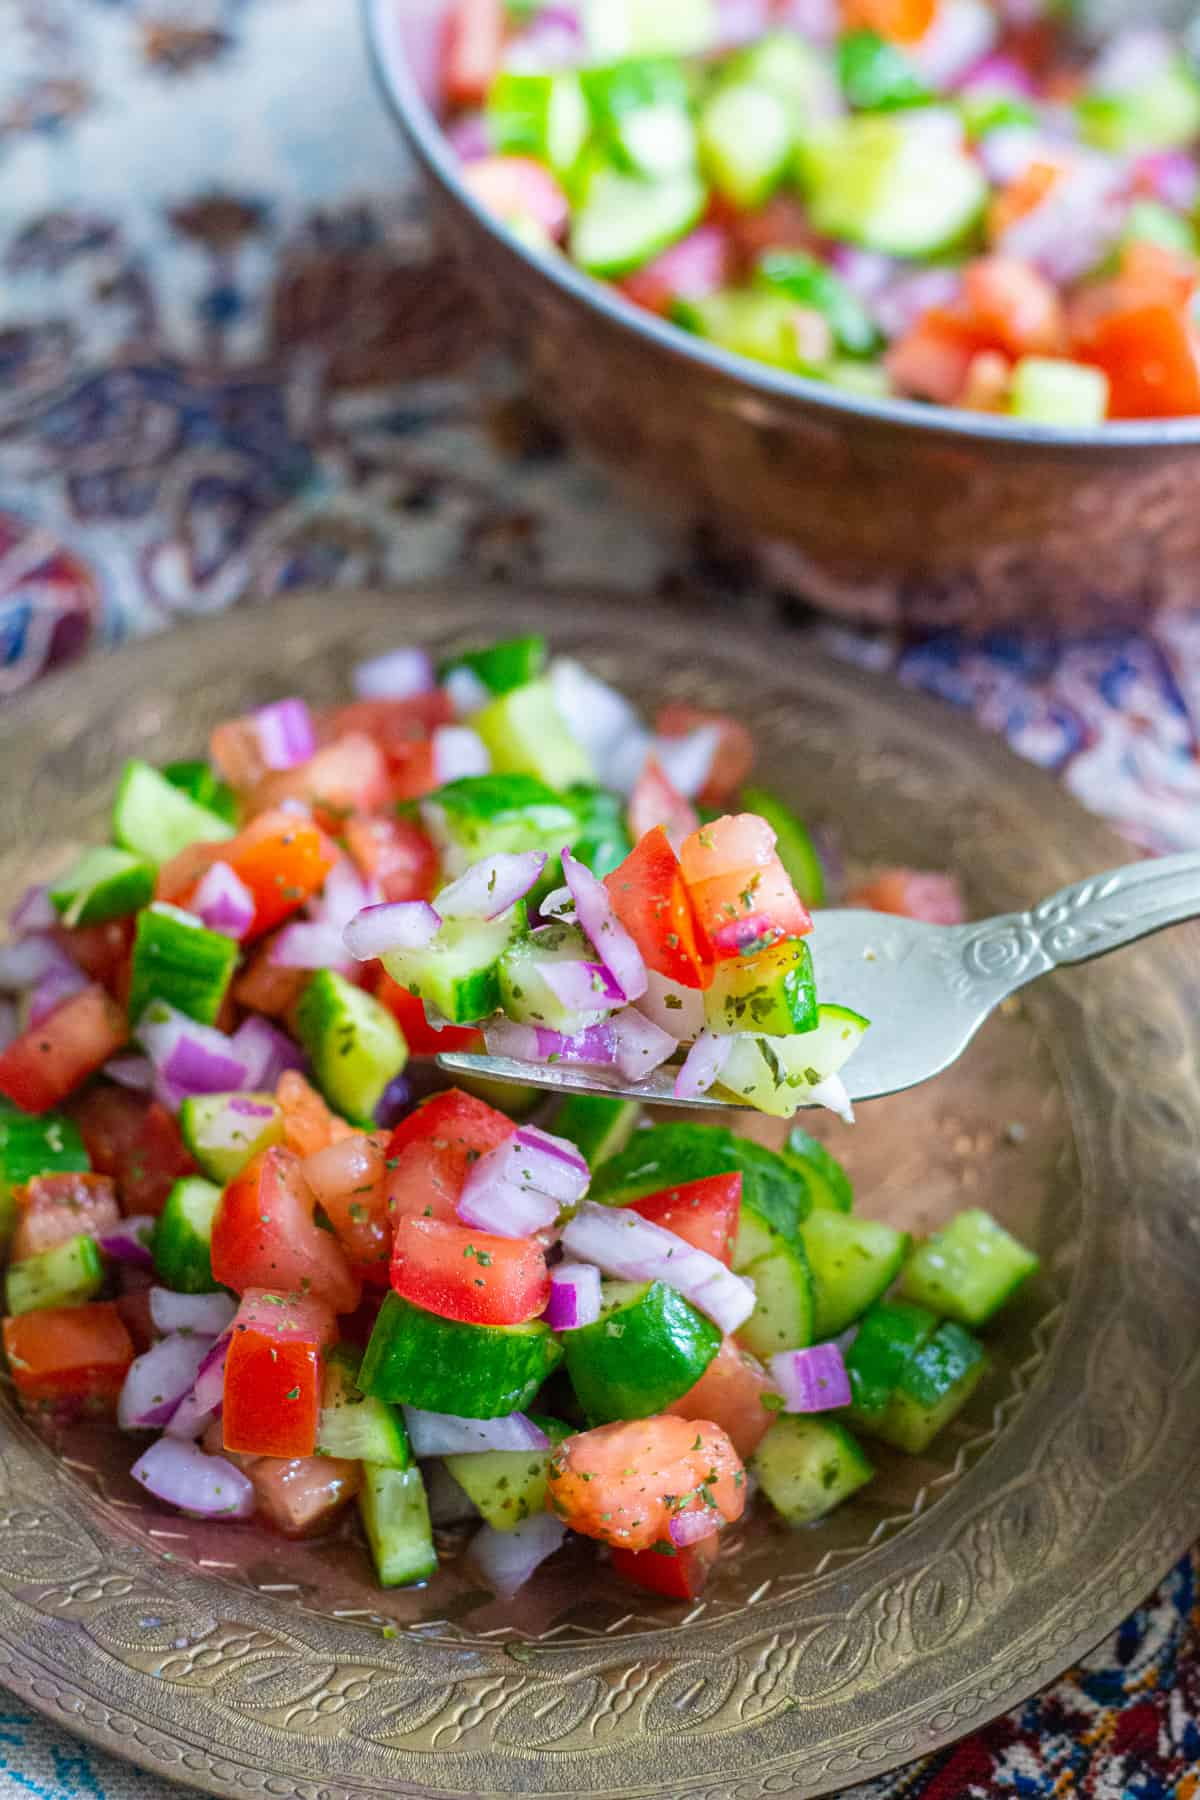 Add some dried mint and lemon juice to this salad for maximum flavor.